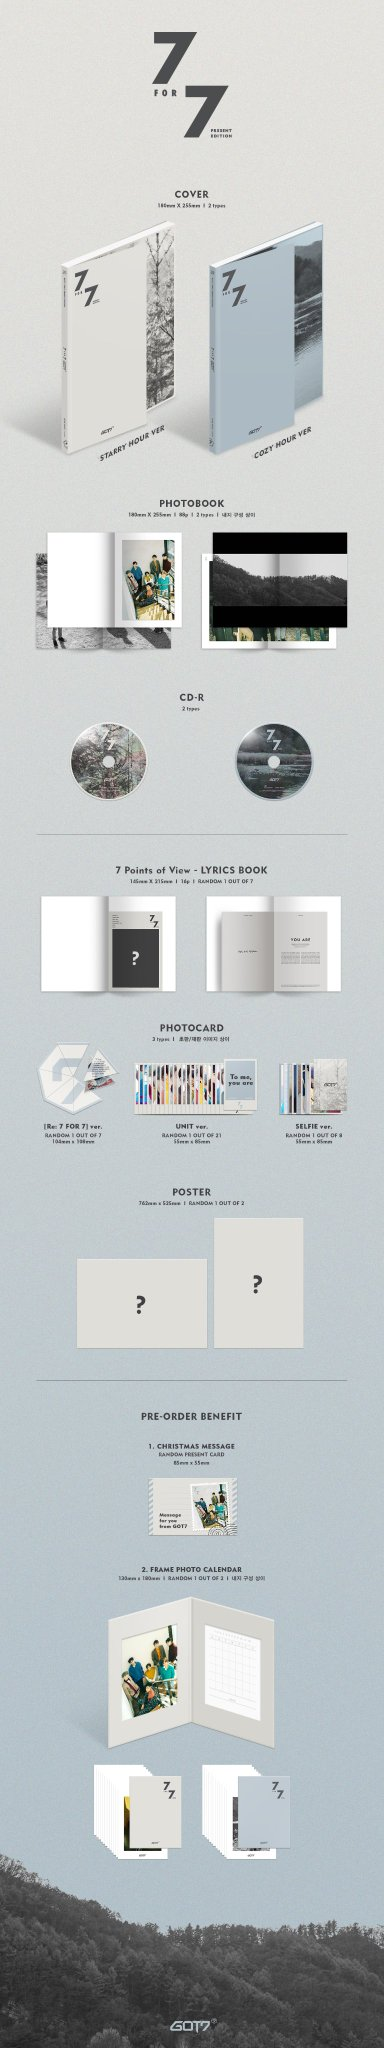 got7-7-for-7-album